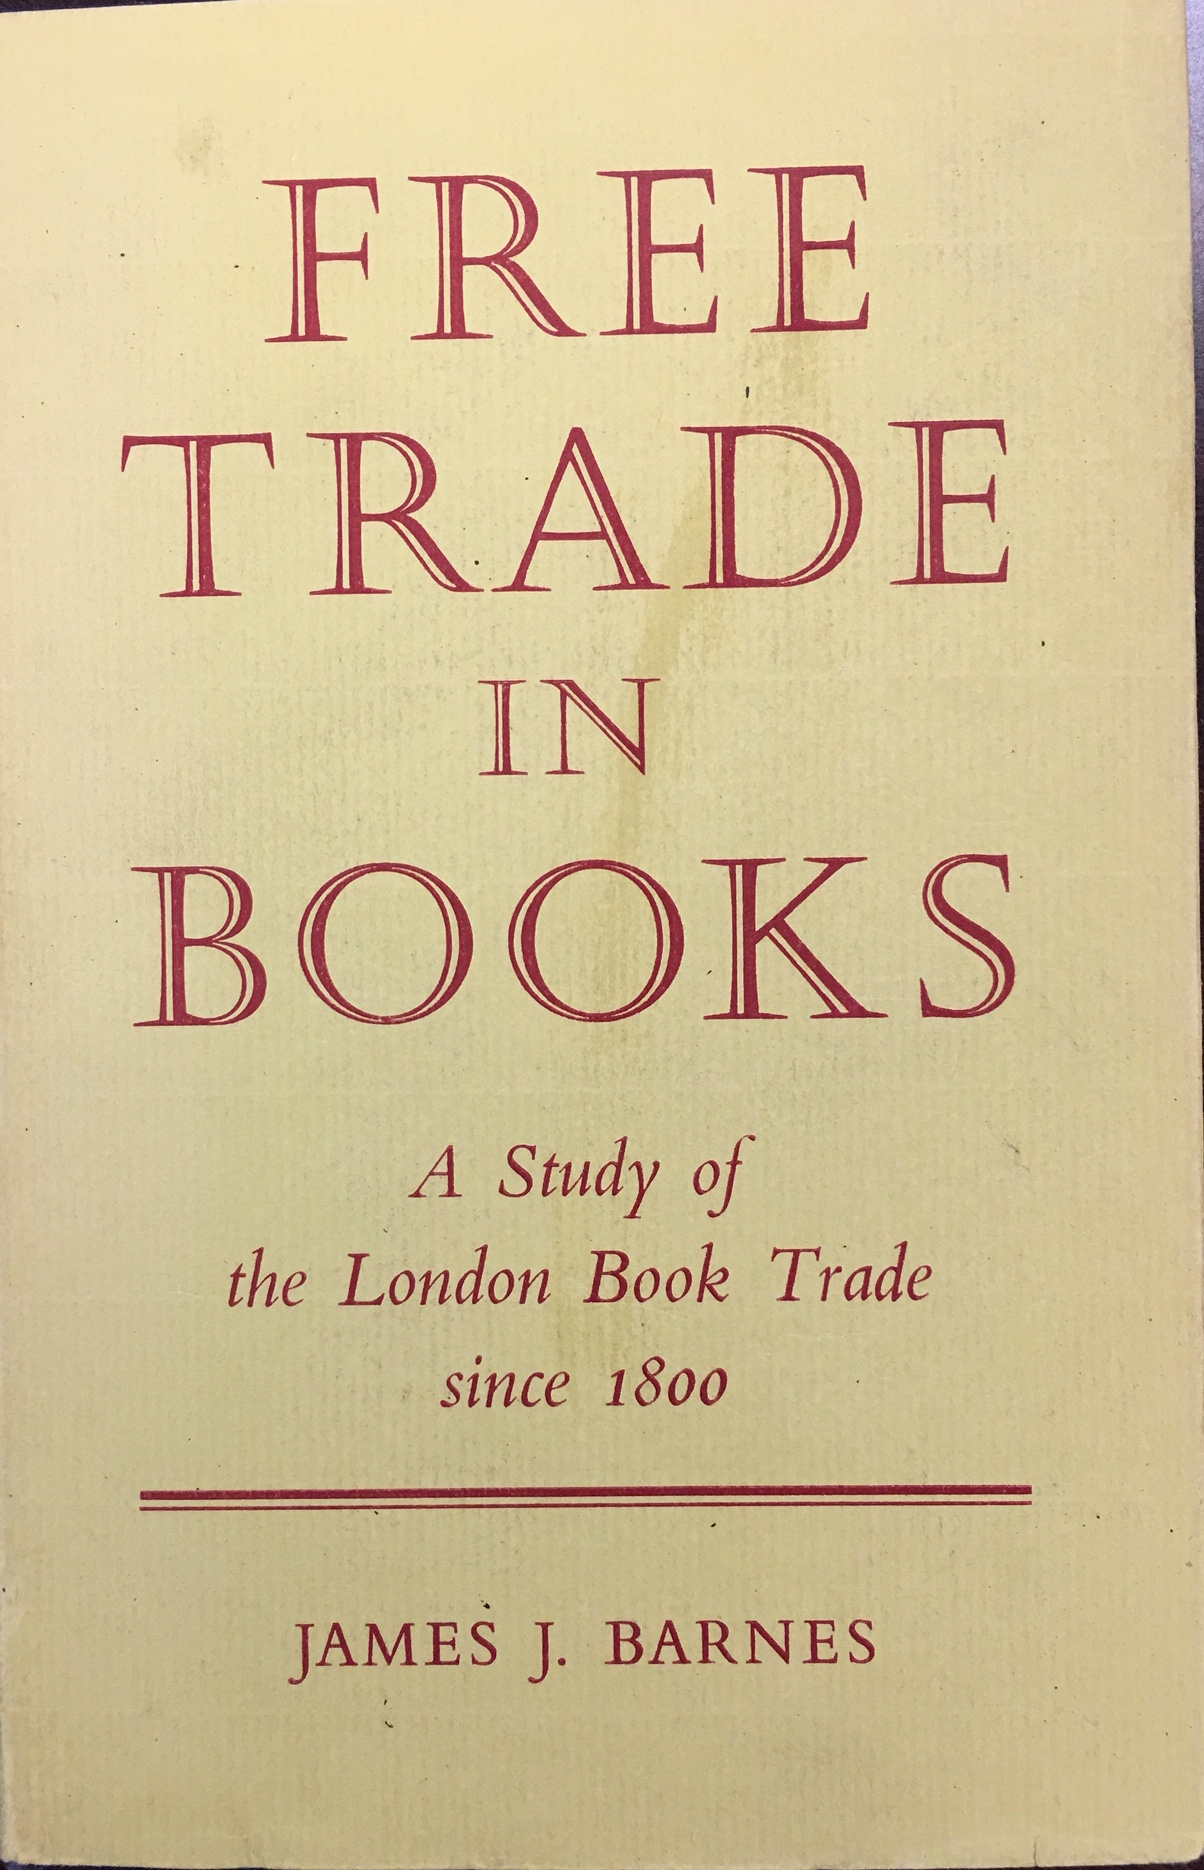 Image for Free trade in books: A Study of the London Book Trade Since 1800